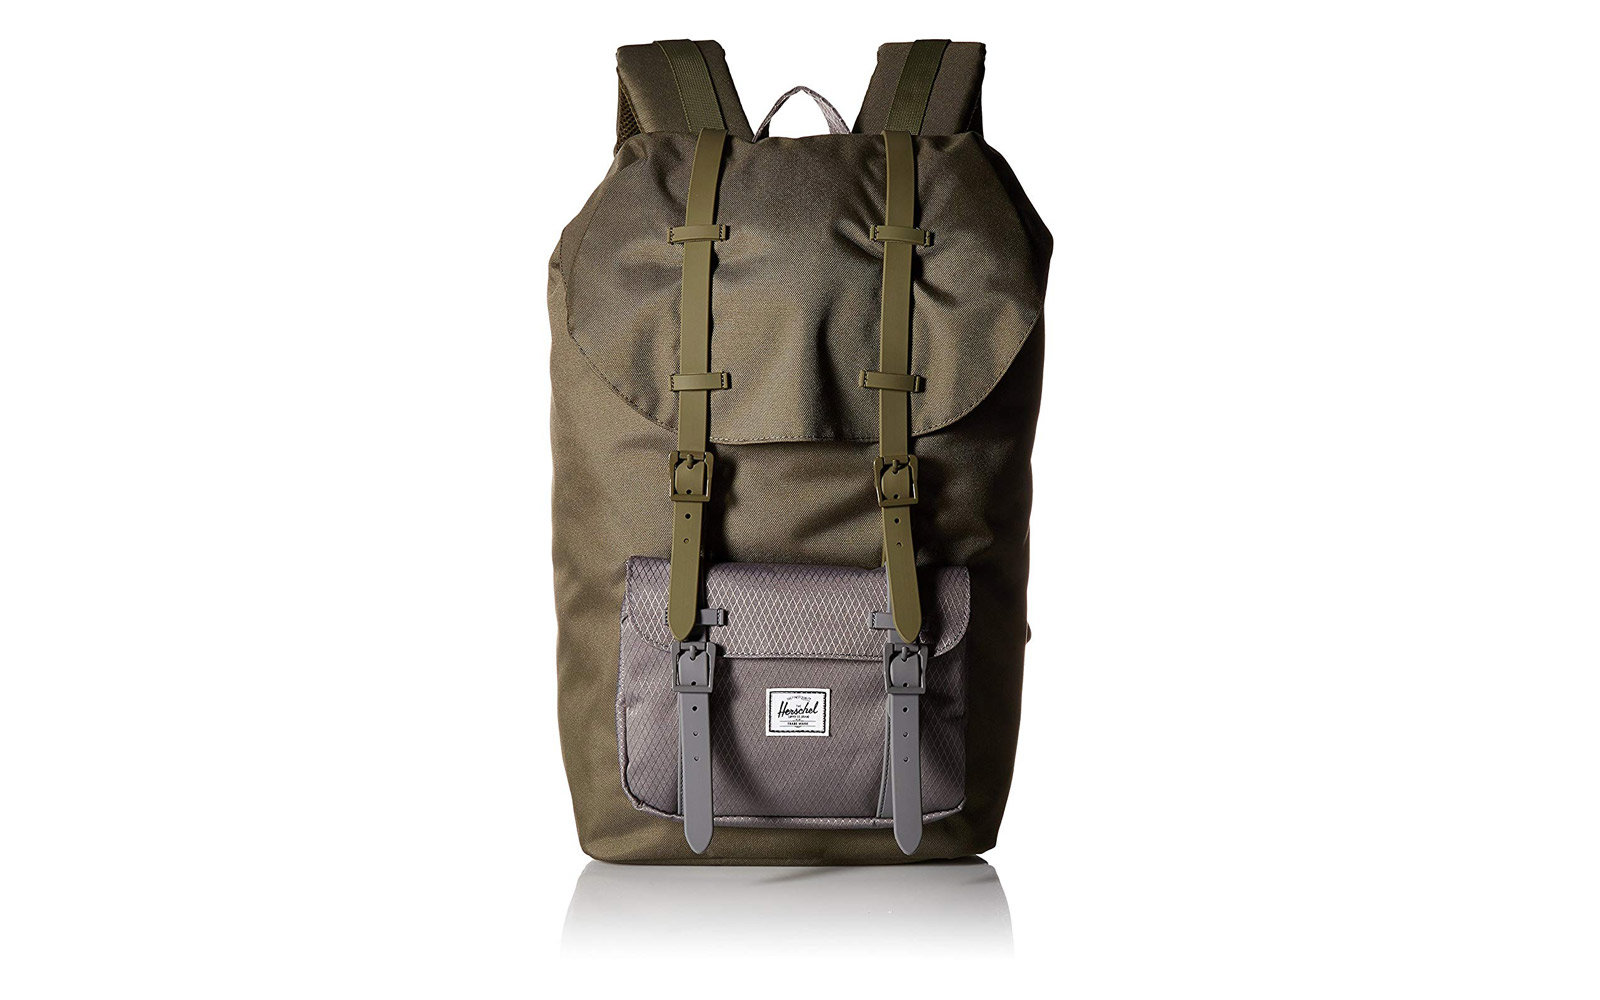 The Best Laptop Backpacks for Travel a08a8d9aeeb66